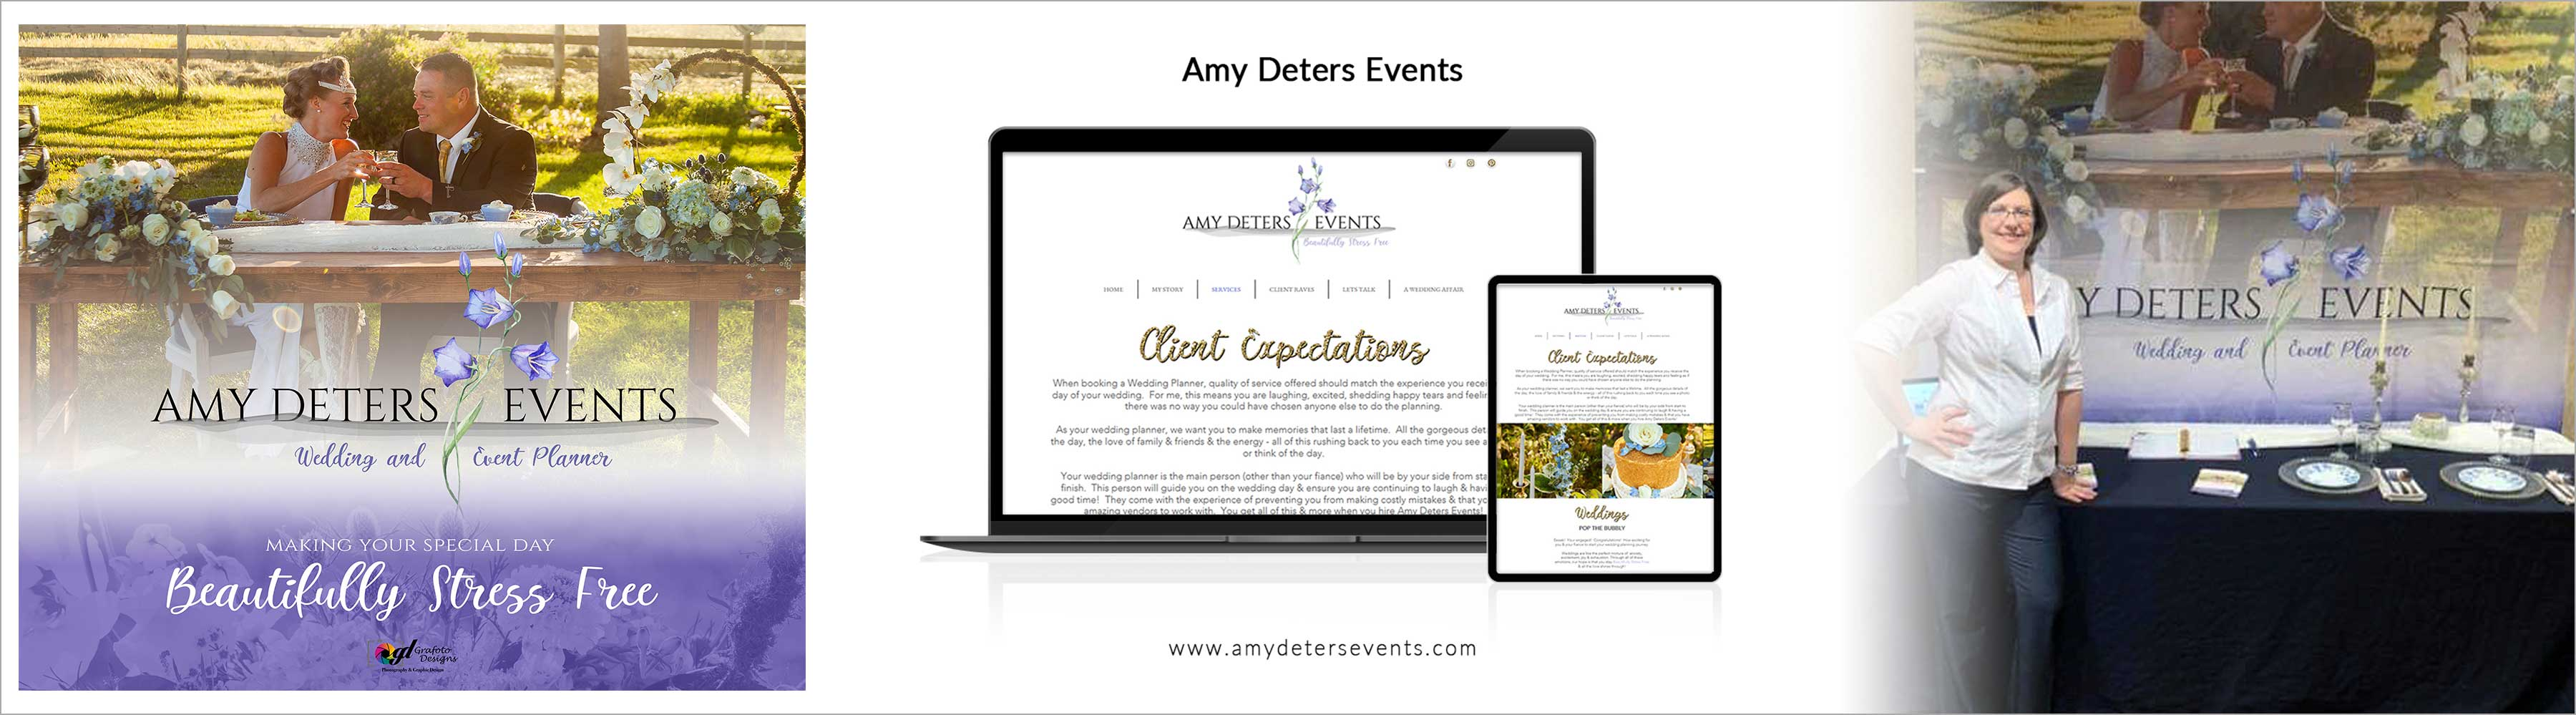 Amy Deters Events Tradeshow Banner and Website Design